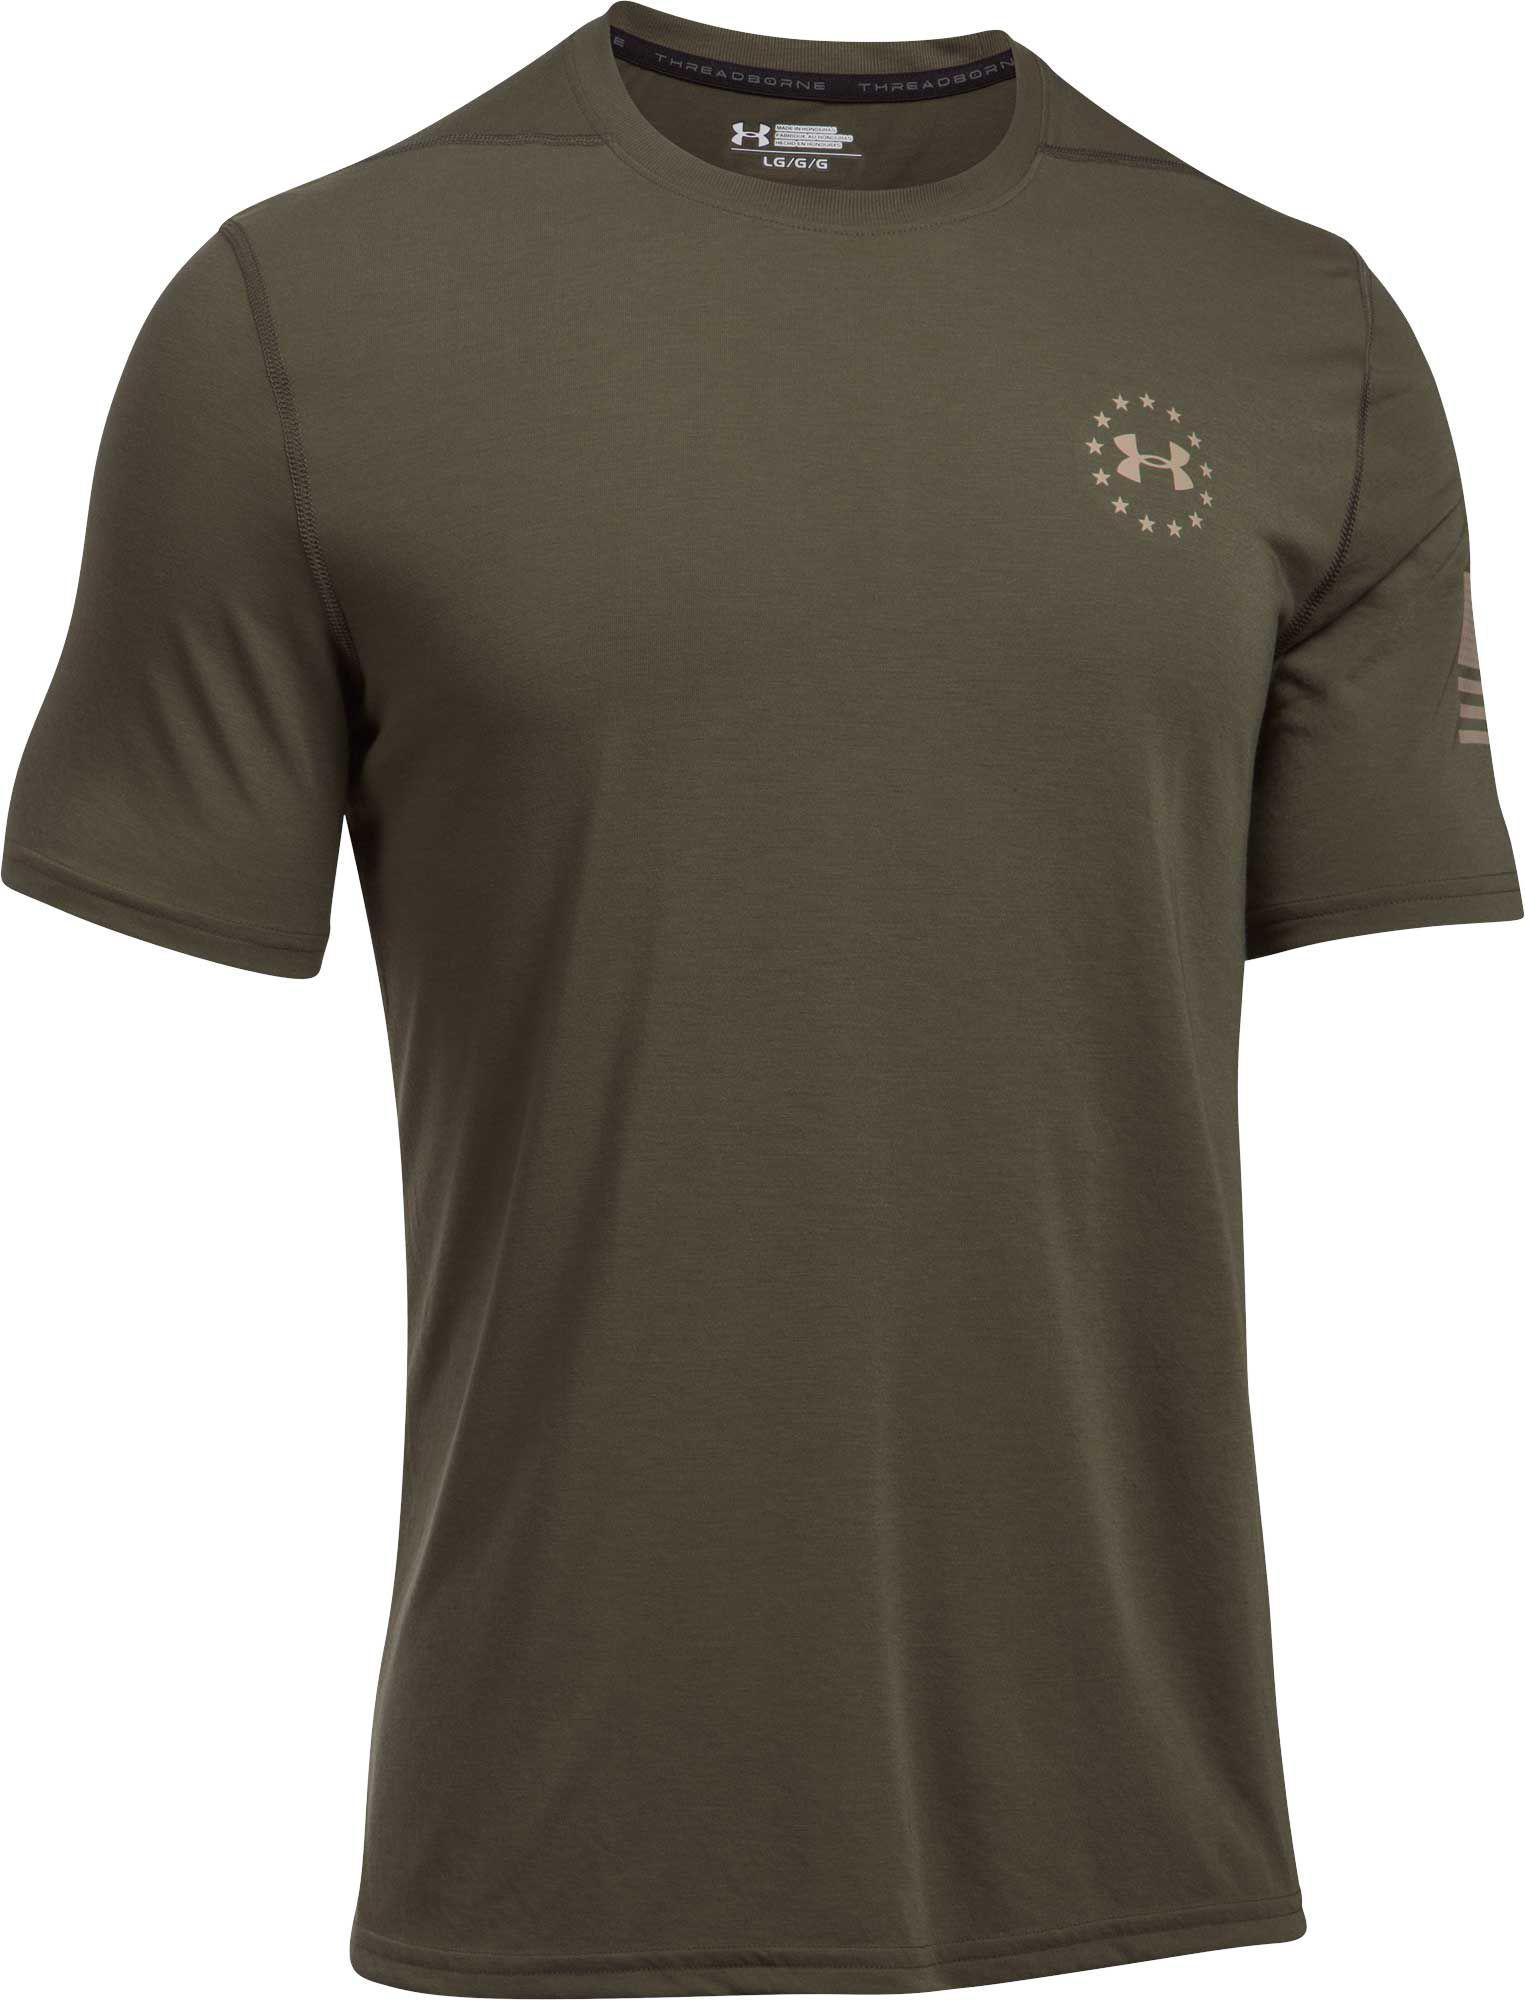 6c1ef32d Lyst - Under Armour Freedom Siro T-shirt in Green for Men